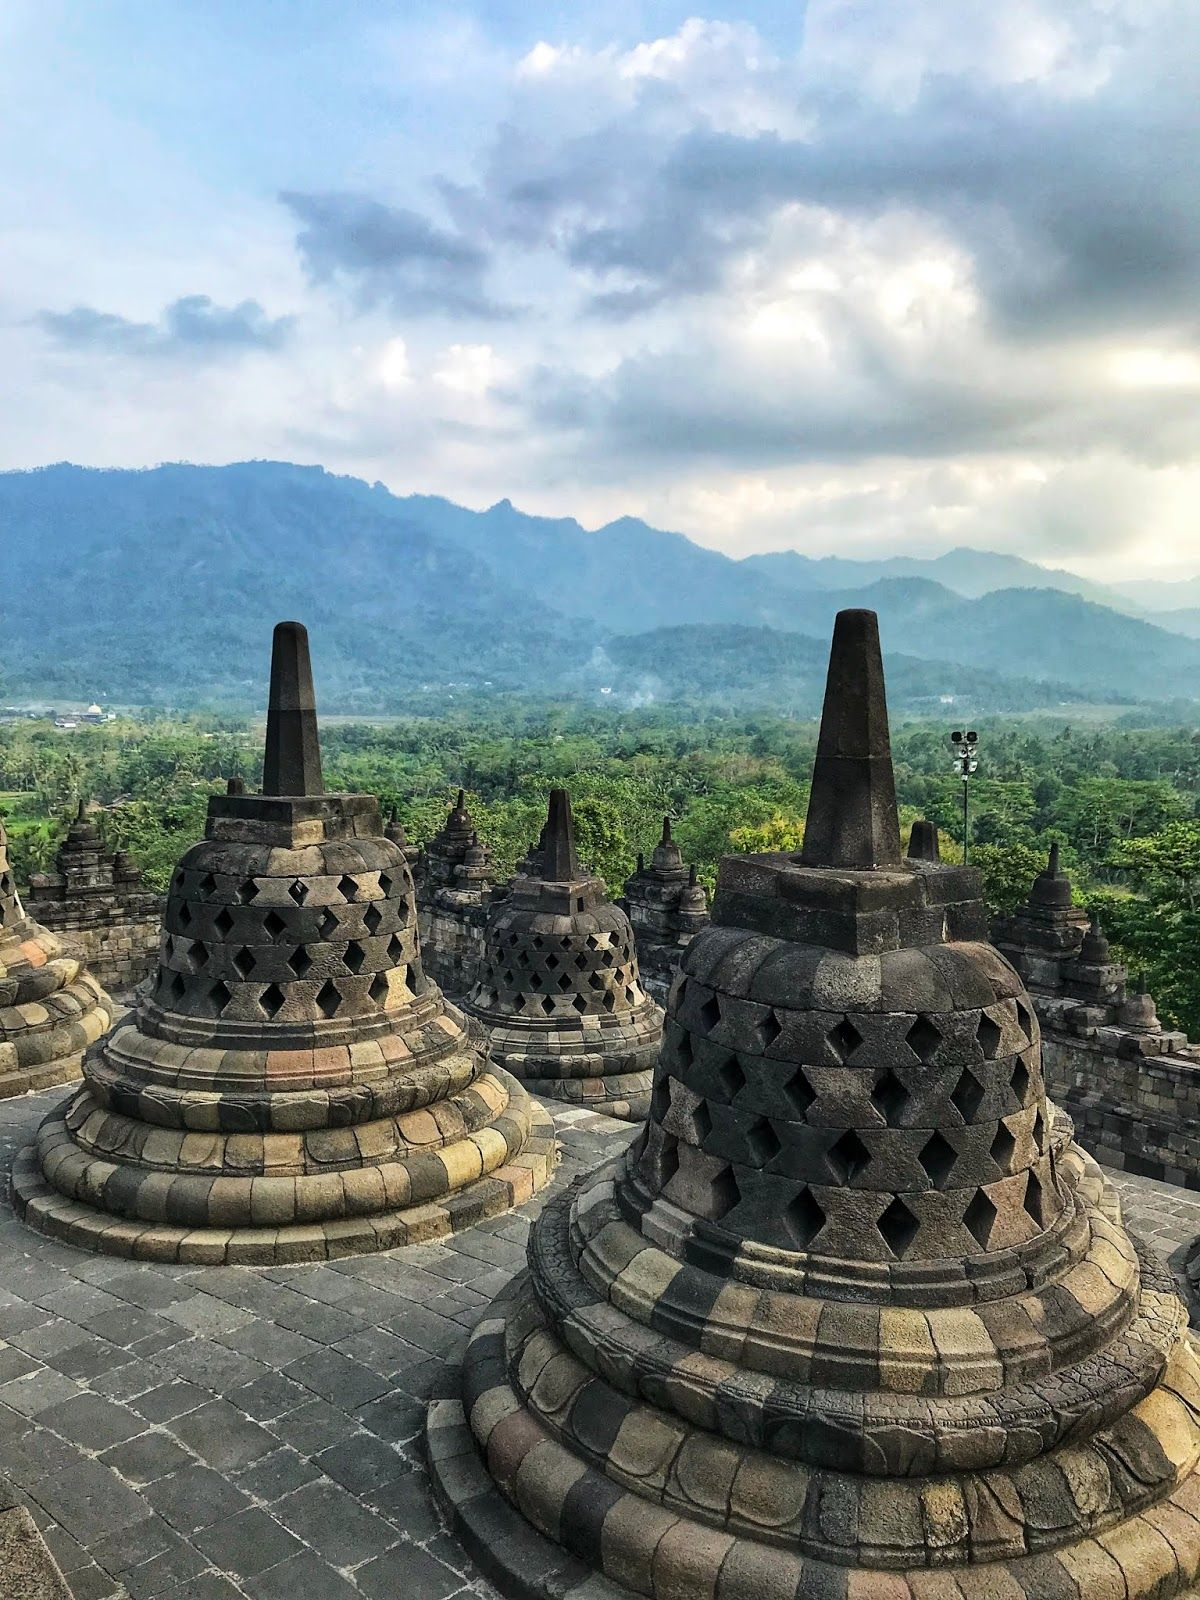 Borobudur Hd Wallpaper : borobudur, wallpaper, Borobudur, Temple, Pxndx